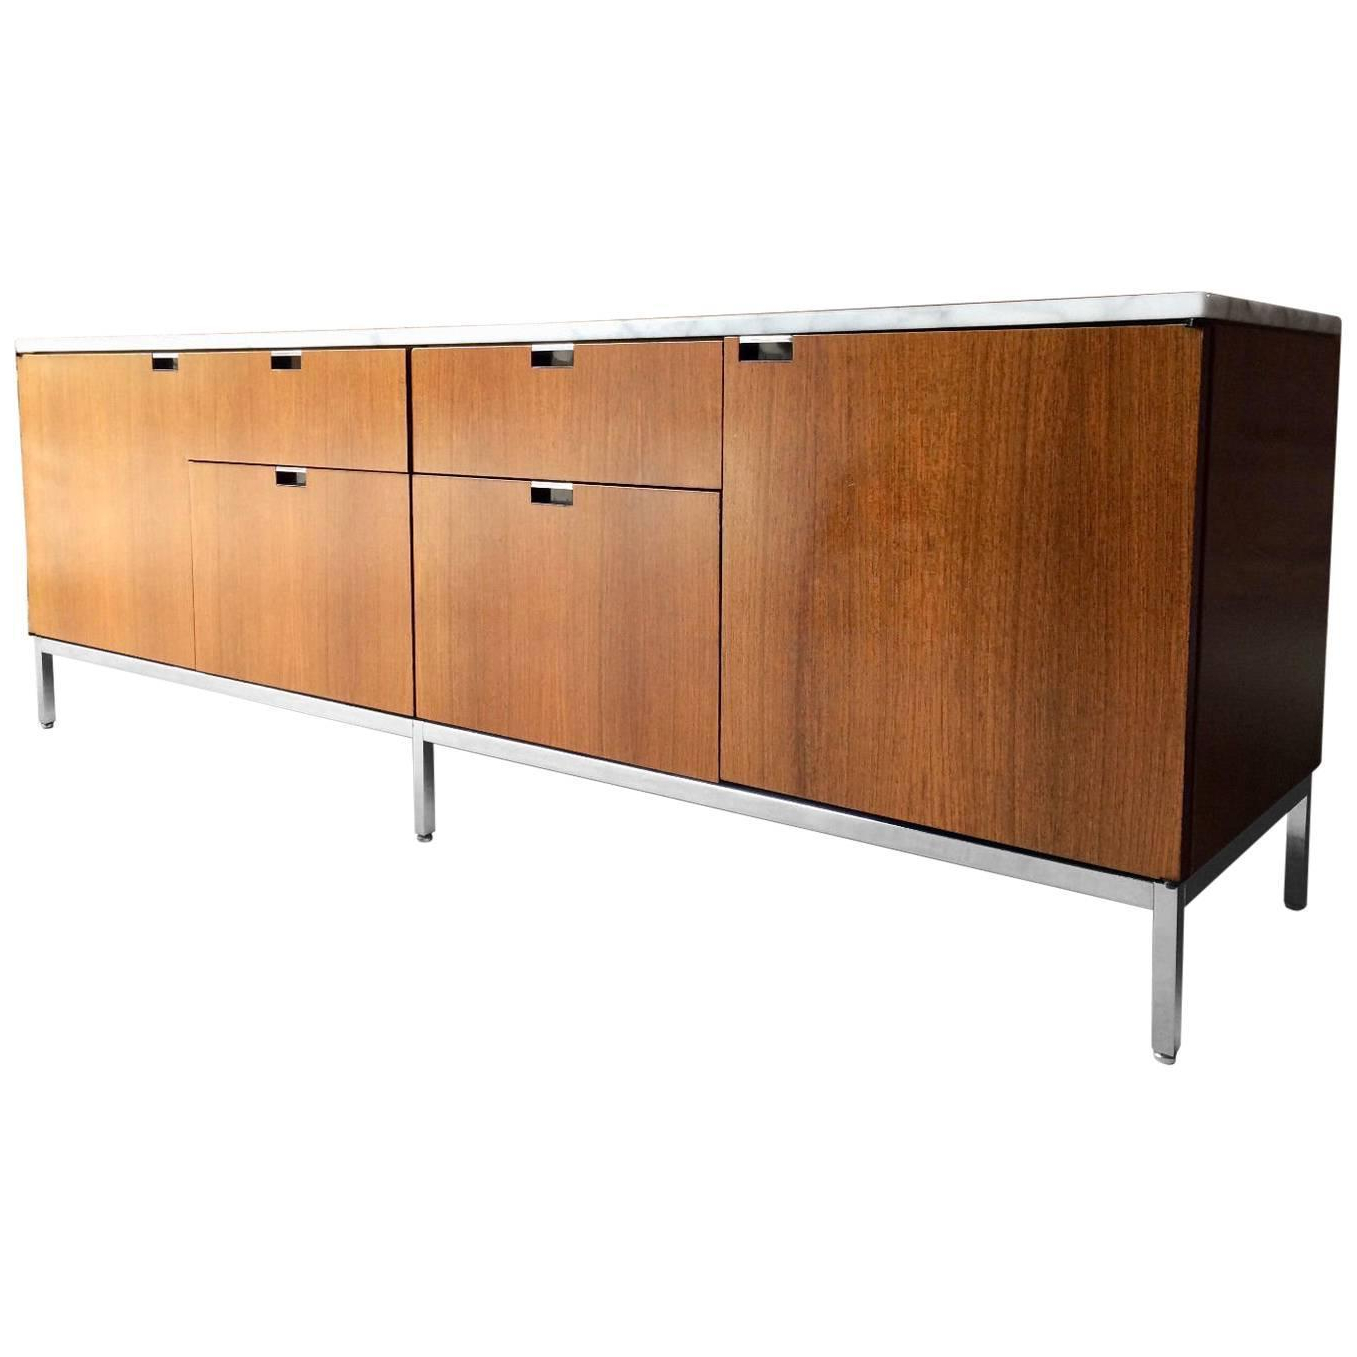 Florence Knoll Credenza Sideboard Marble Topped Light Walnut Mid Century Inside Ocean Marble Credenzas (View 13 of 20)